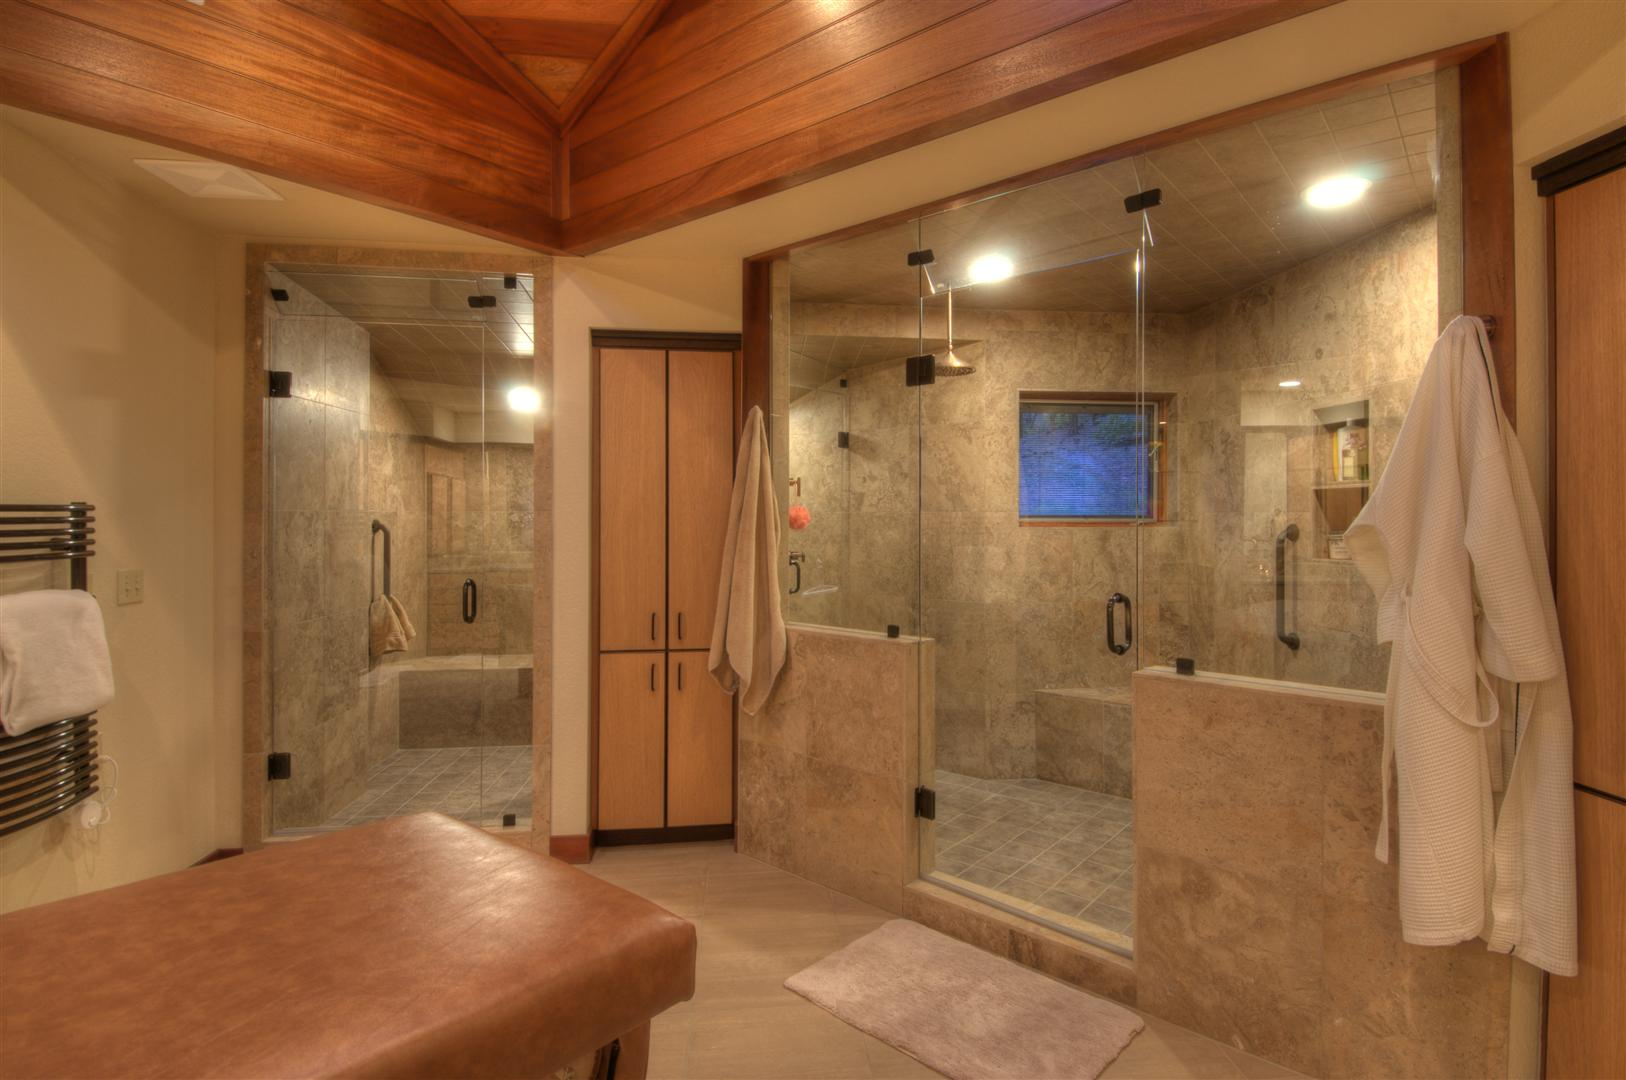 Bathroom design and remodeling in durango colorado for Bathroom design build